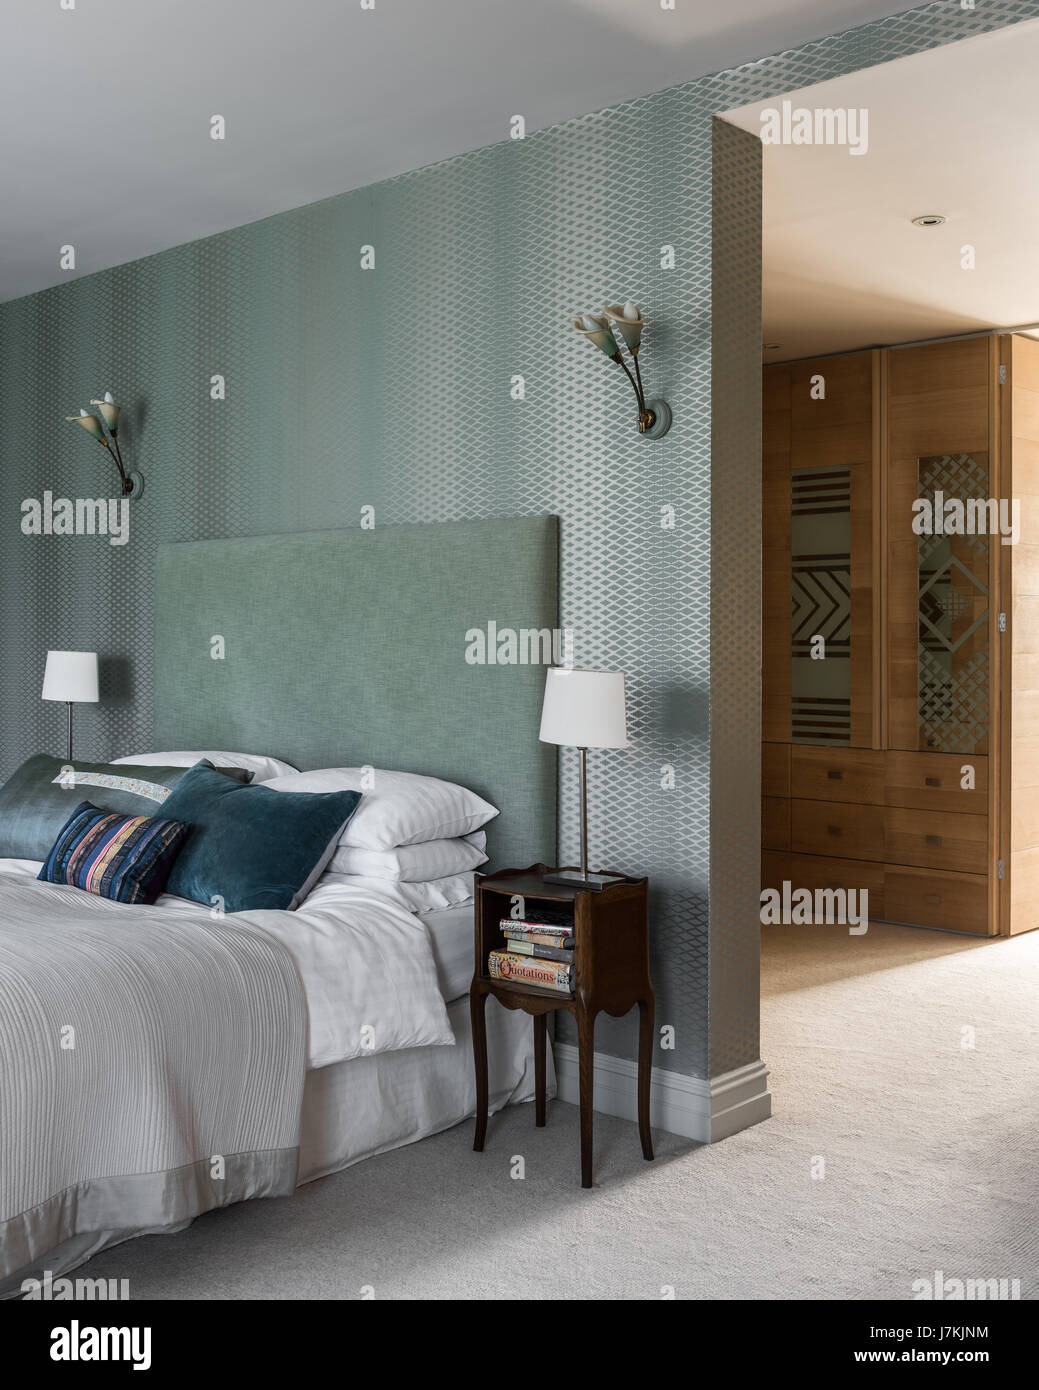 Farrow Ball Lattice Wallpaper In Bedroom With Green Headboard